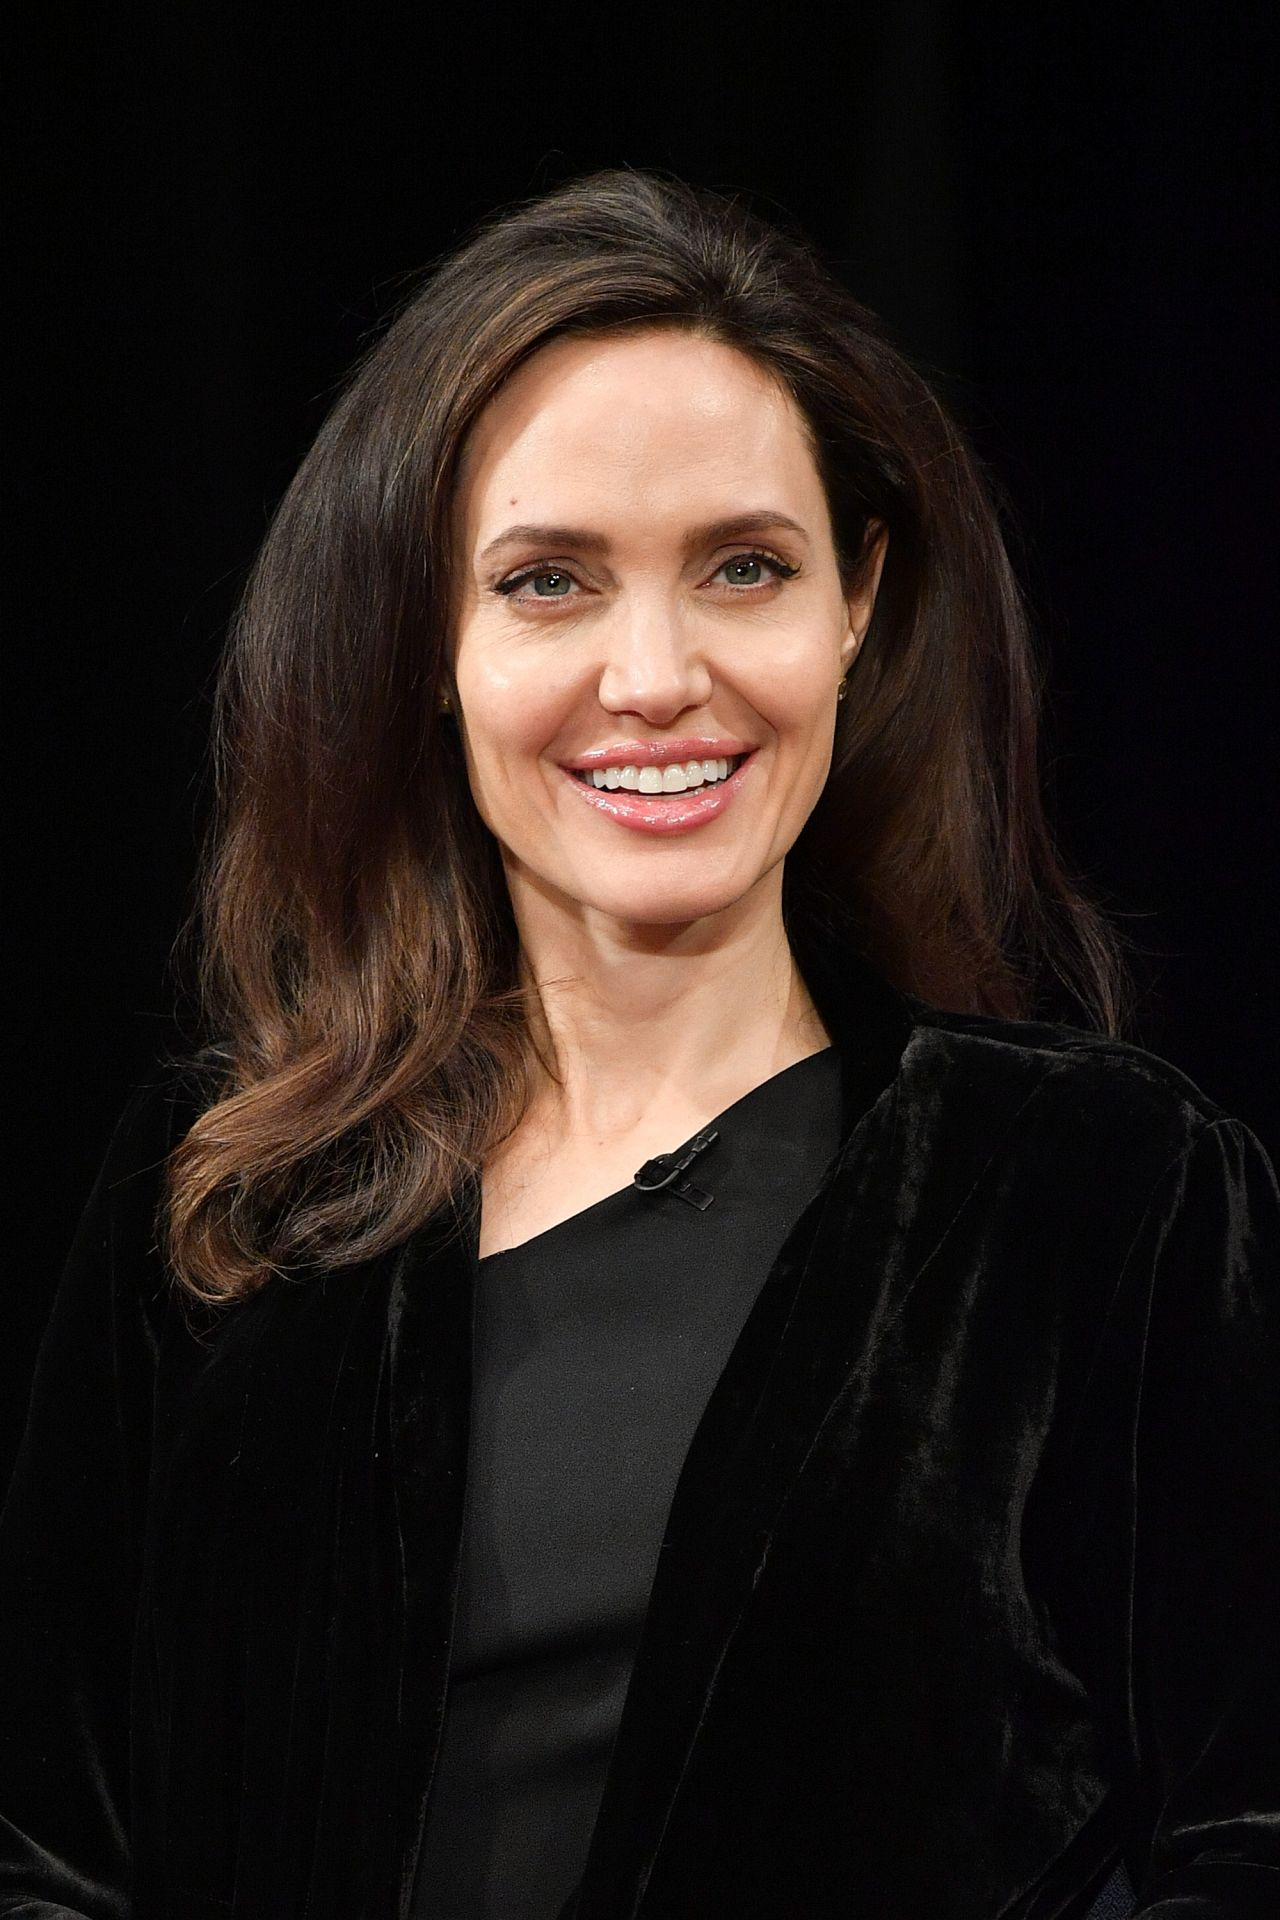 http://celebmafia.com/wp-content/uploads/2017/12/angelina-jolie-light-after-darkness-memory-resilience-and-renewal-in-cambodia-siscussion-at-asia-society-in-nyc-12-14-2017-6.jpg